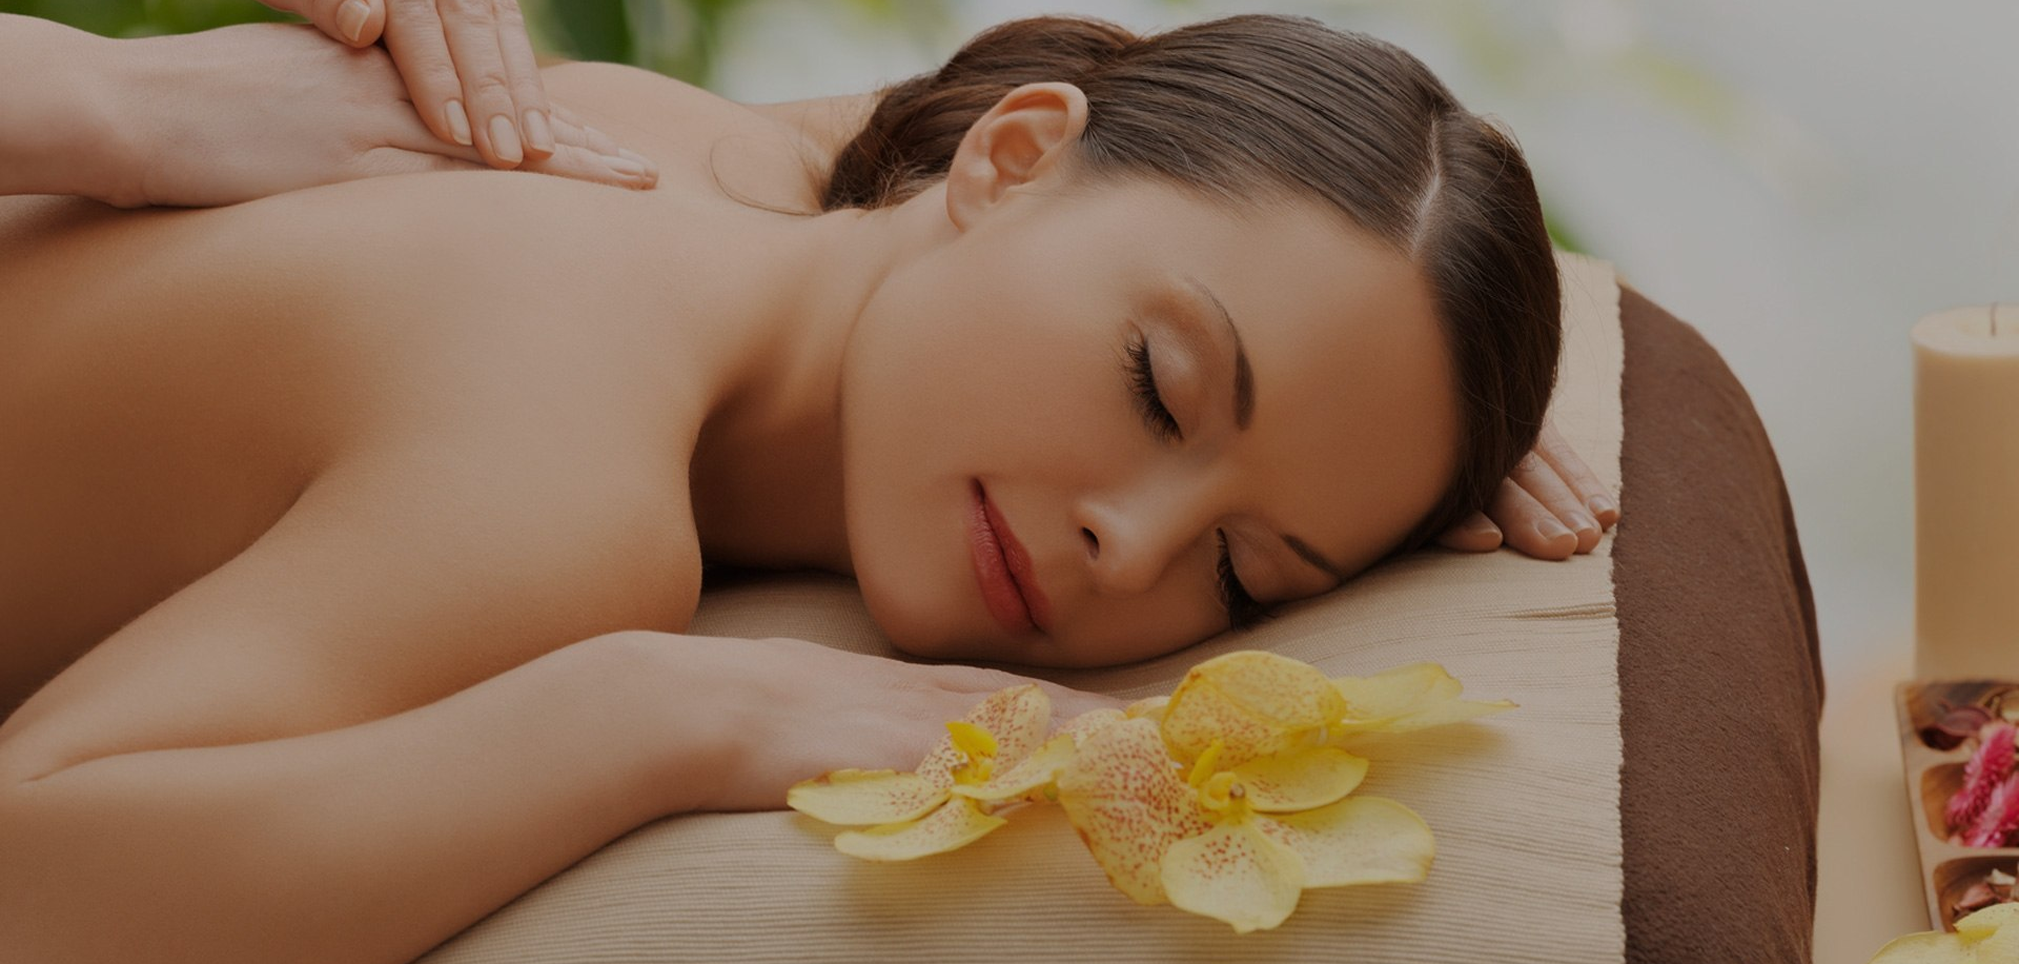 Are You Looking For A Spa Treatment? Know Which One Will Be The Best For You